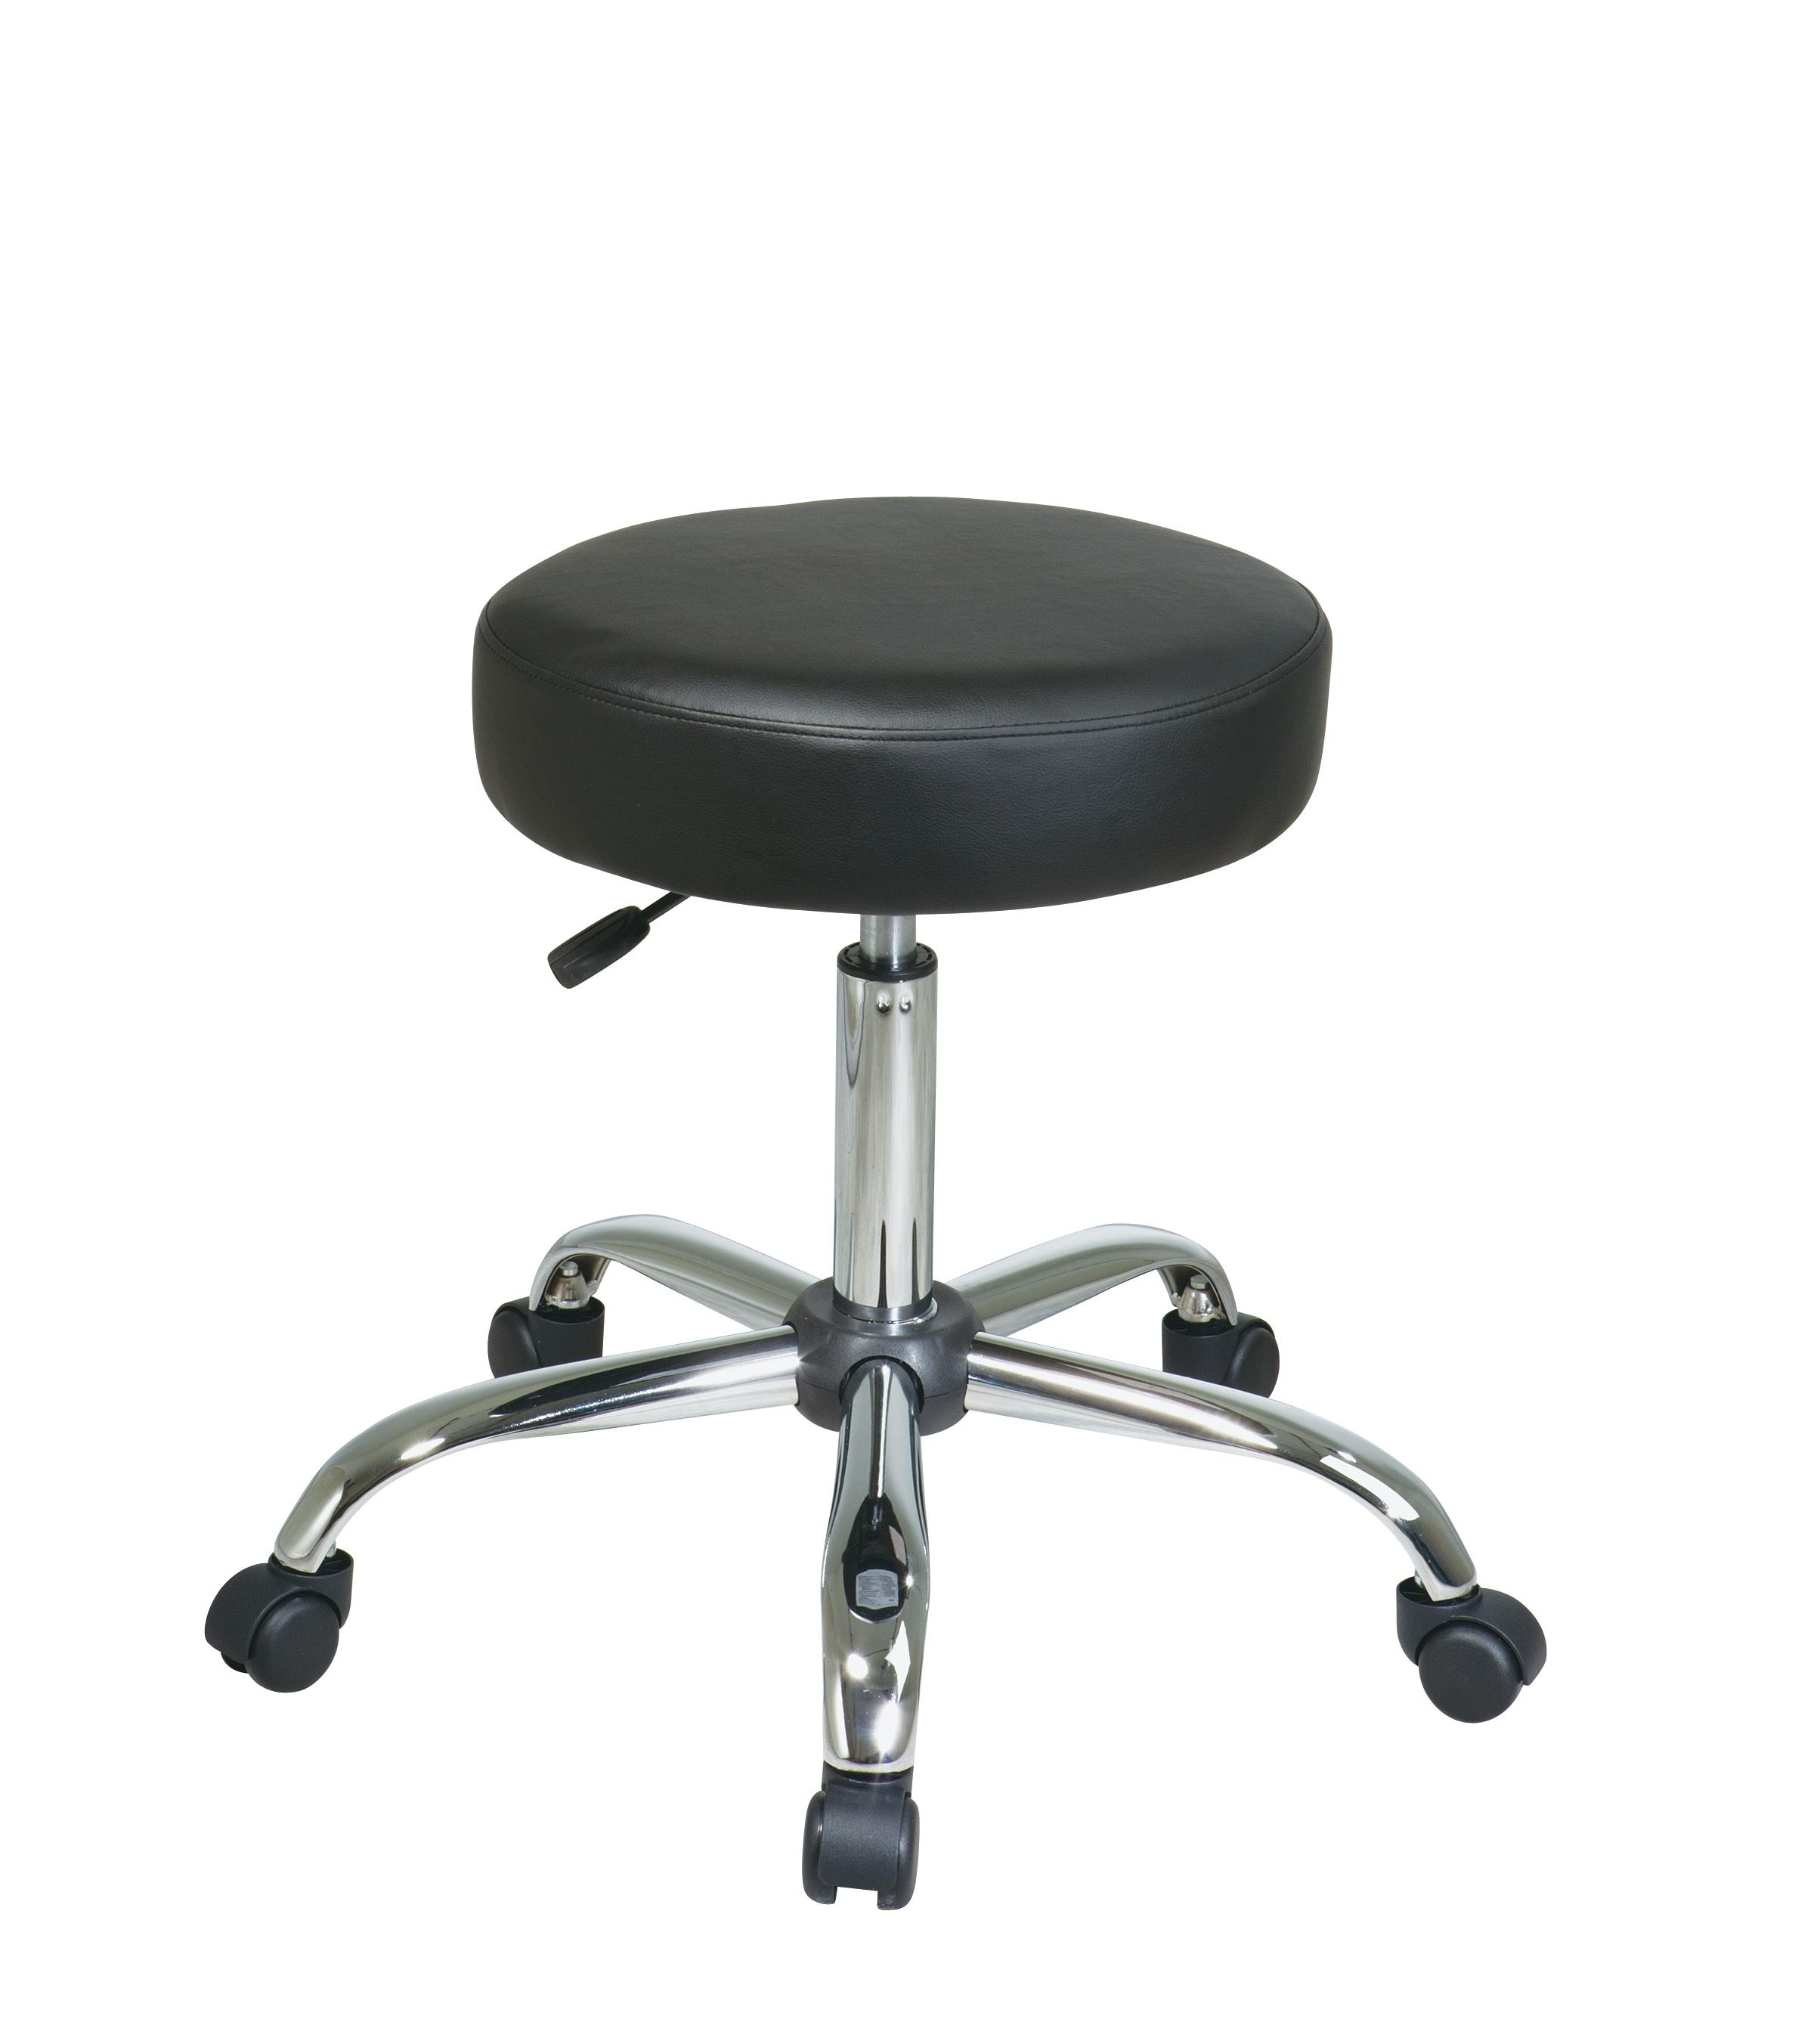 Charmant Backless Office Chair Stool